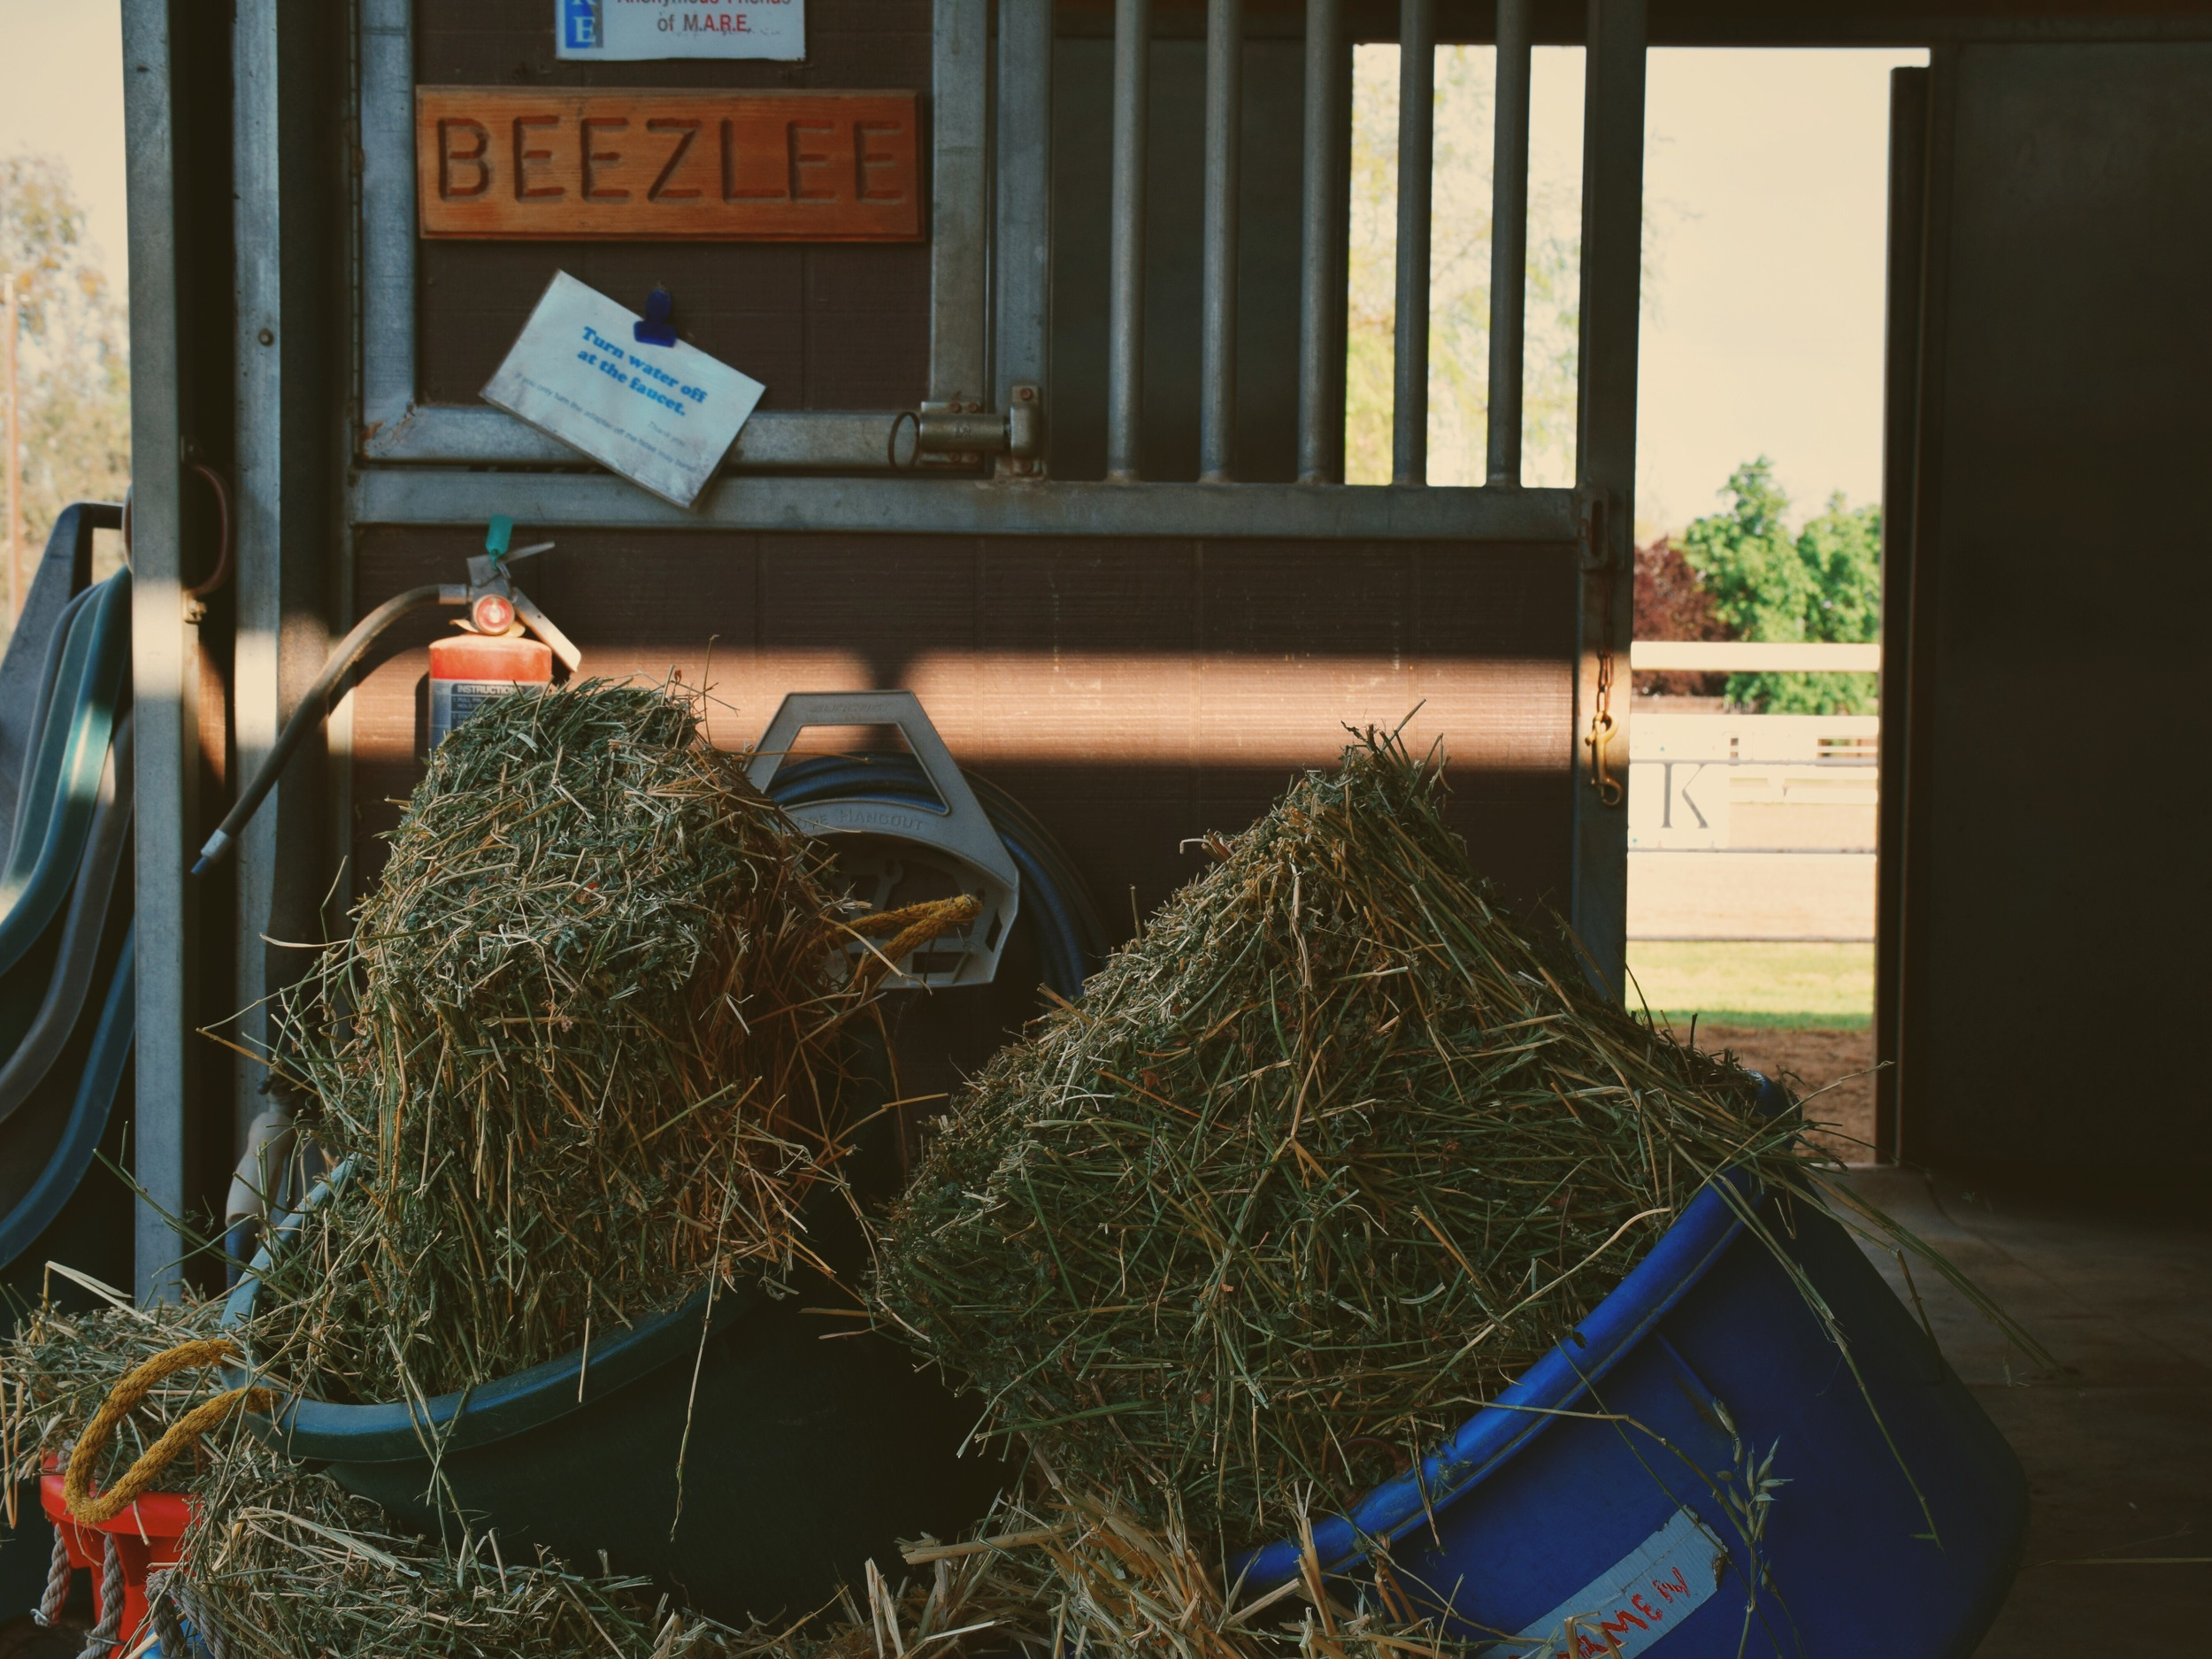 Mrs. Beezlee offers her services as an equine-therapist to help riders build confidence, trust, and respect through the rider-horse bond.